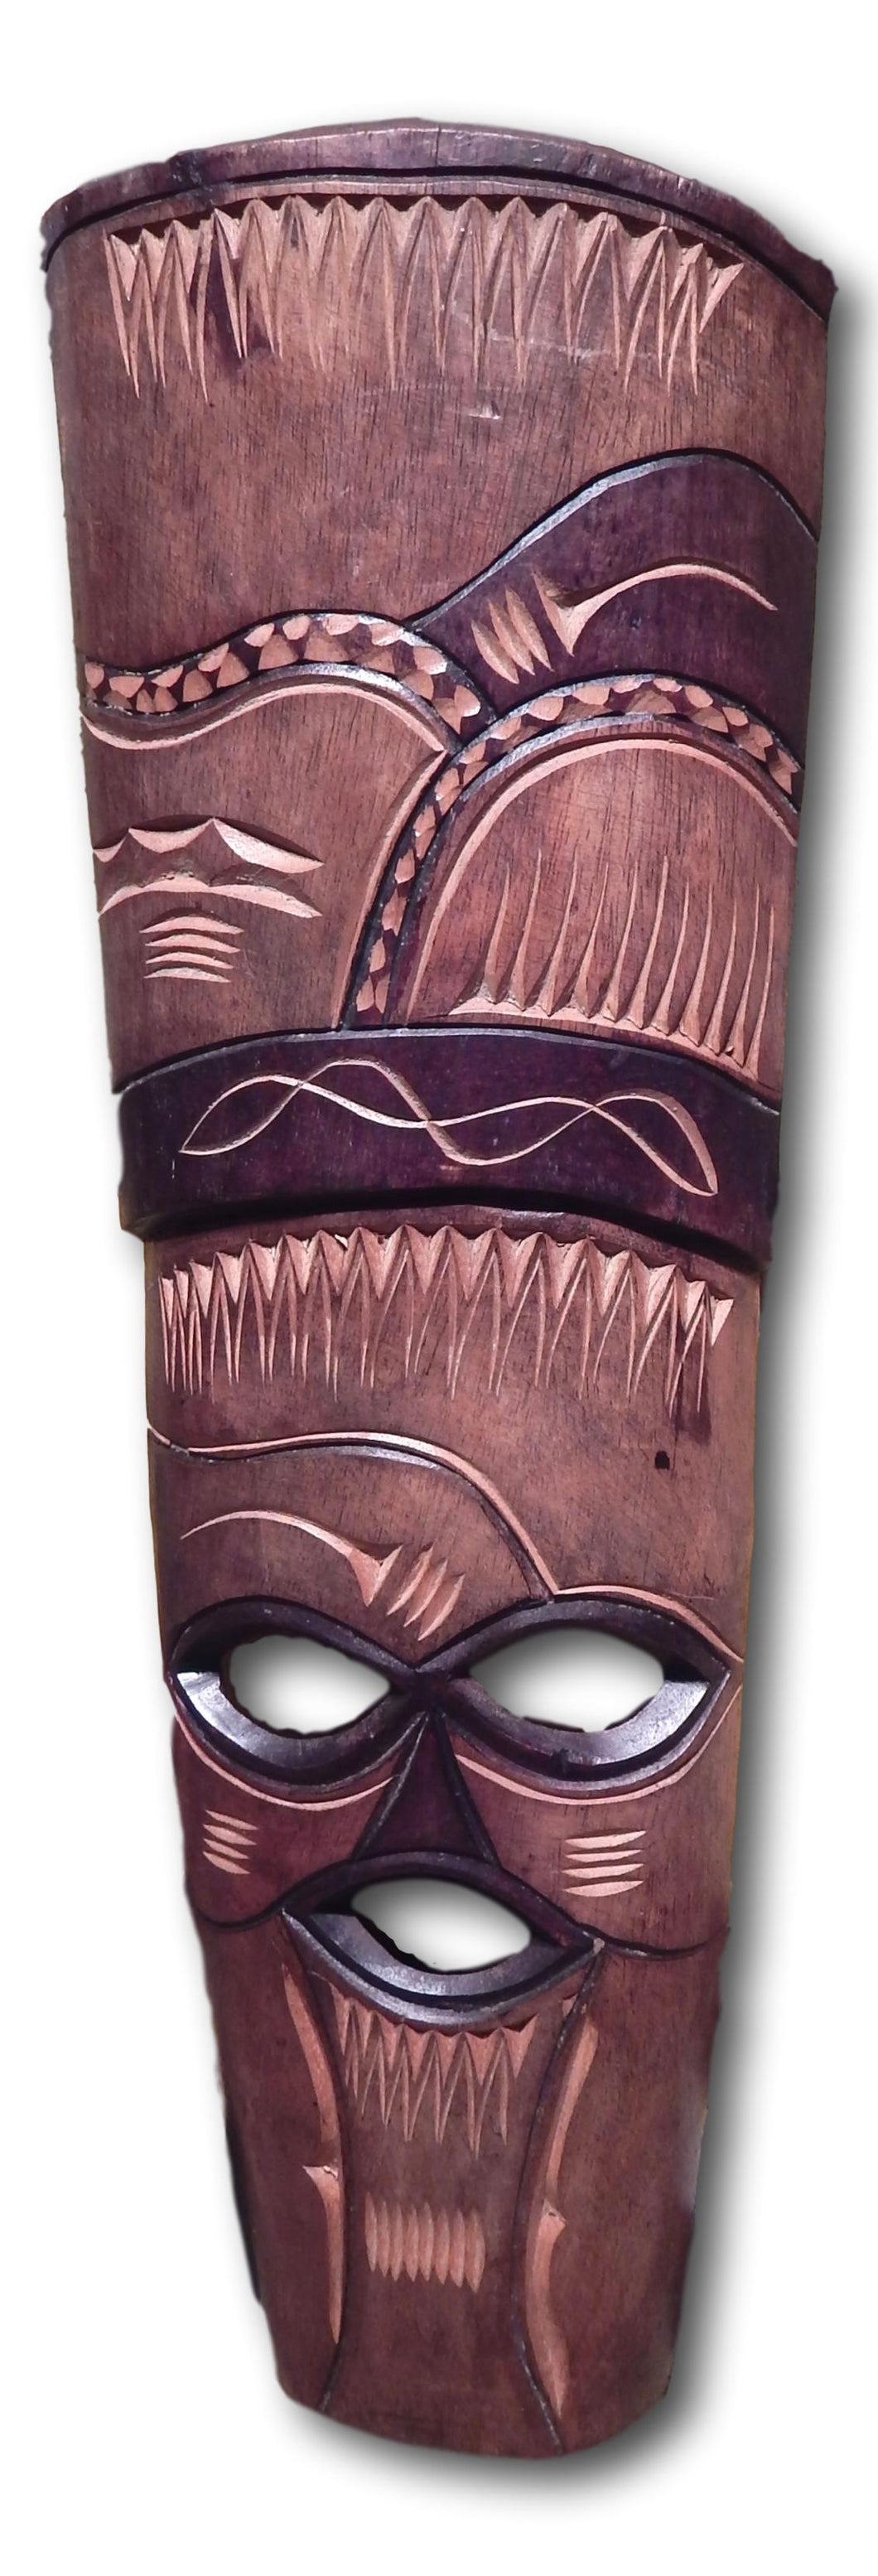 Mask art decoration handcrafted from Seringa wood